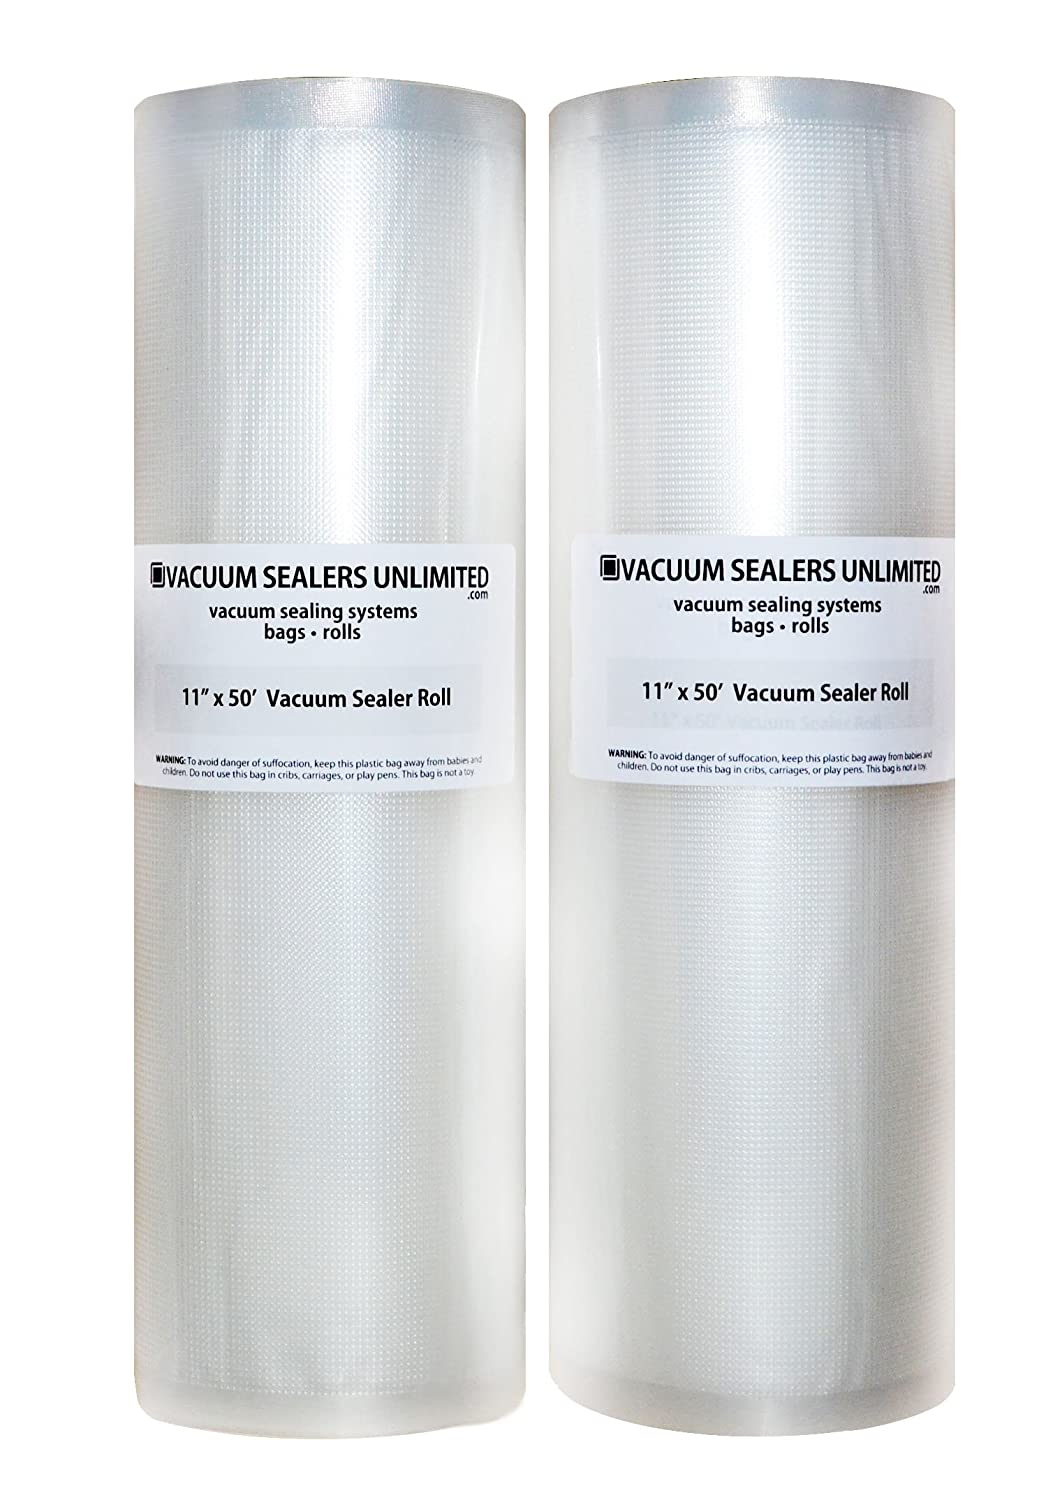 "2 Pack of Vacuum Sealers Unlimited - 11"" x 50' Rolls For FoodSaver, etc. - Thicker, Heavy-Duty Commercial Quality Textured Vacuum Sealer Bags - BPA Free & FDA Approved"